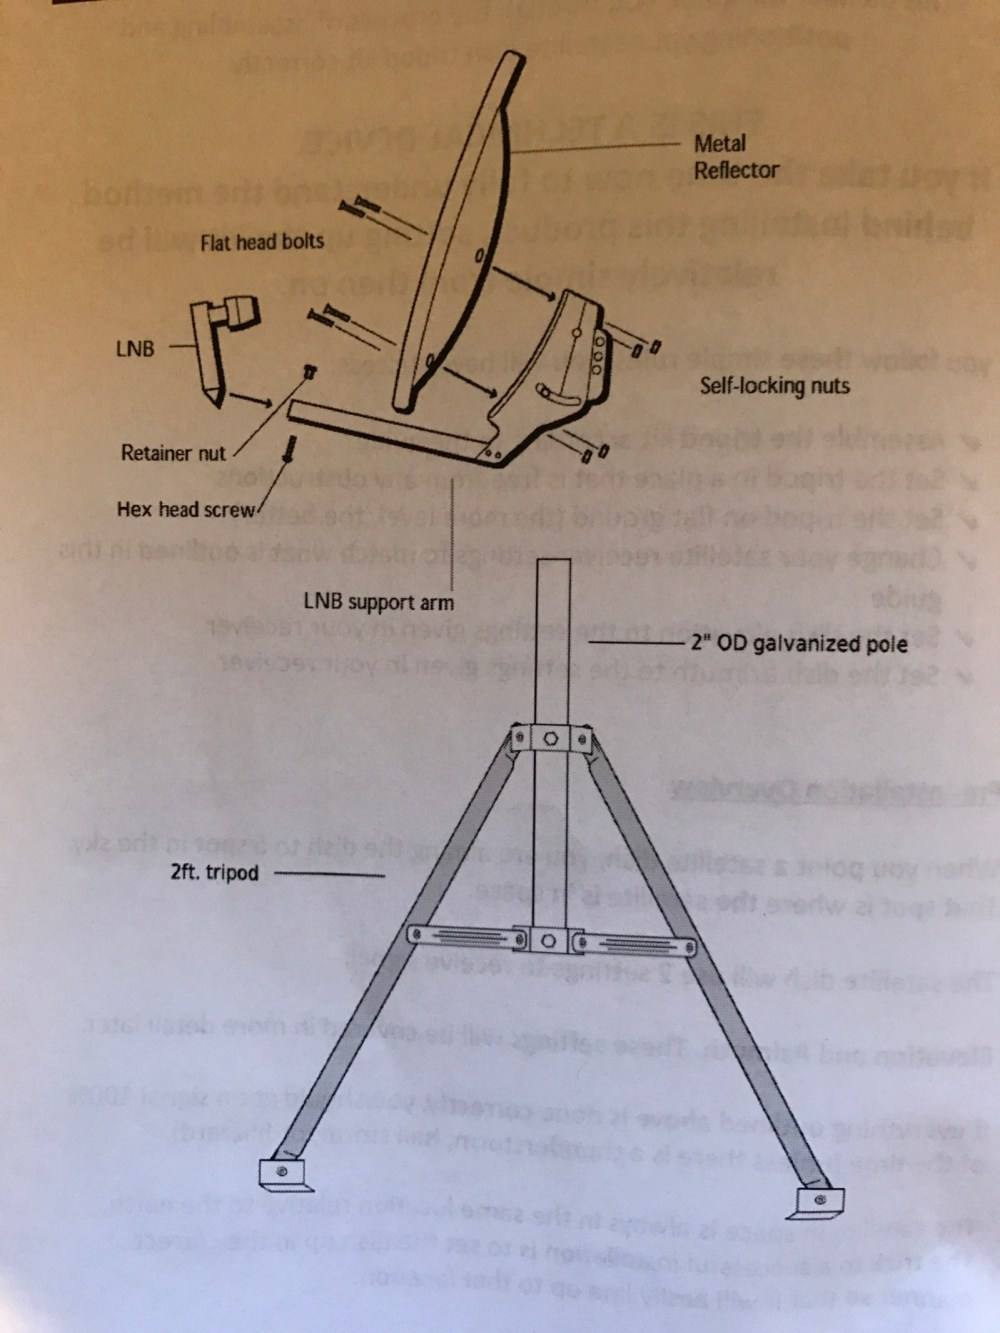 medium resolution of we have a different lnb and lnb mounting bracket which is mounted slightly different than pictured here the tripod requires no assembly and simply unfolds